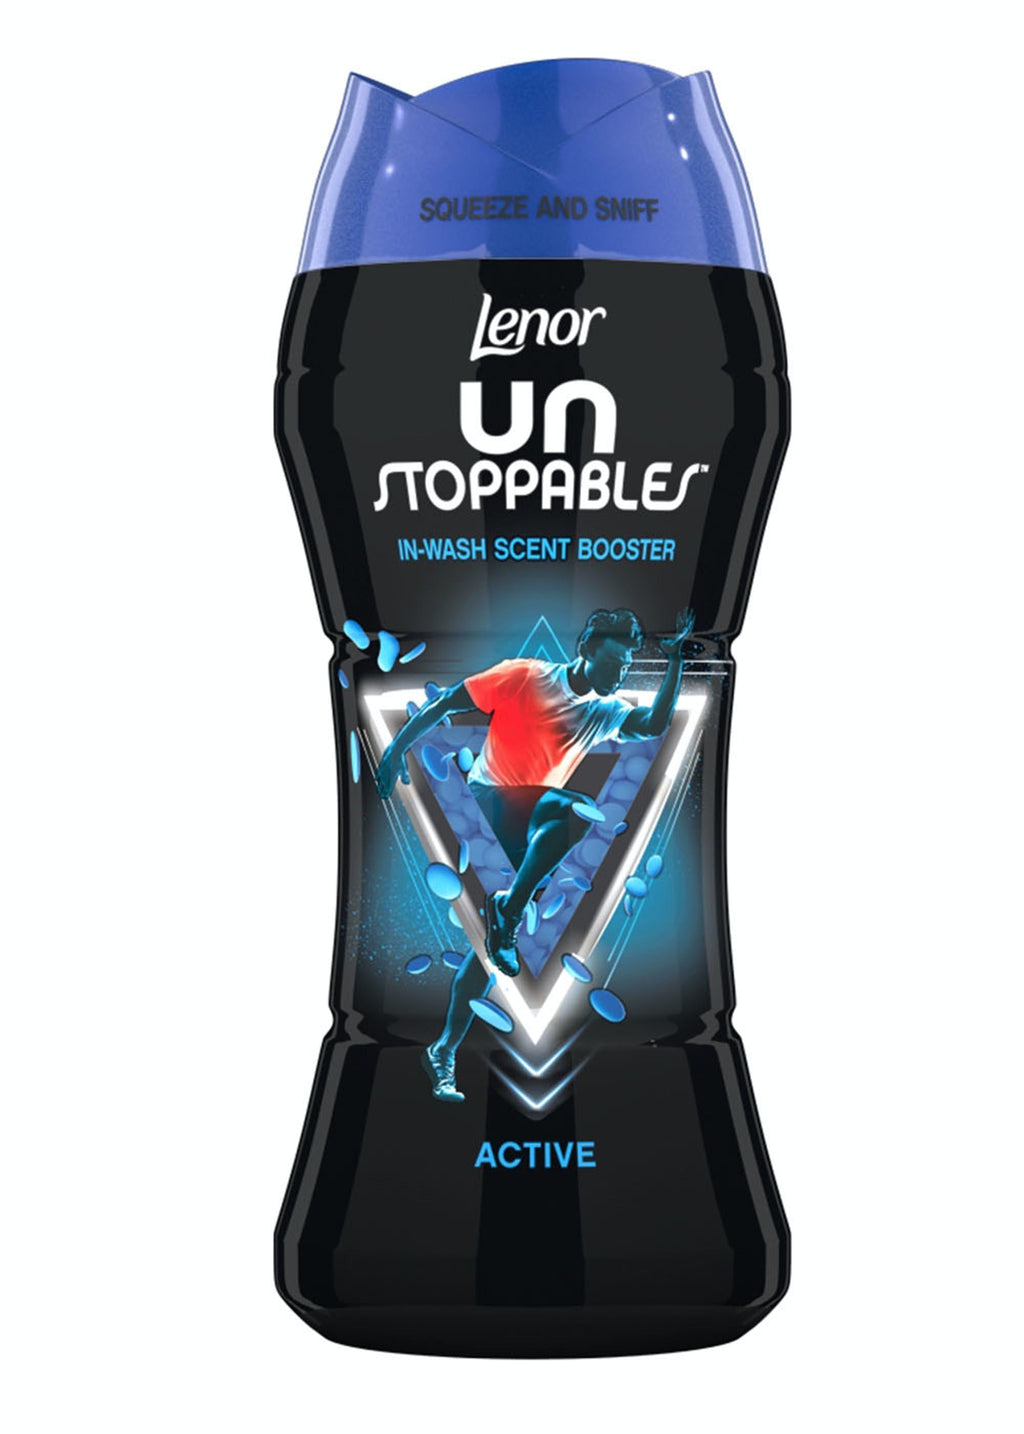 Lenor Unstoppables Active 194g